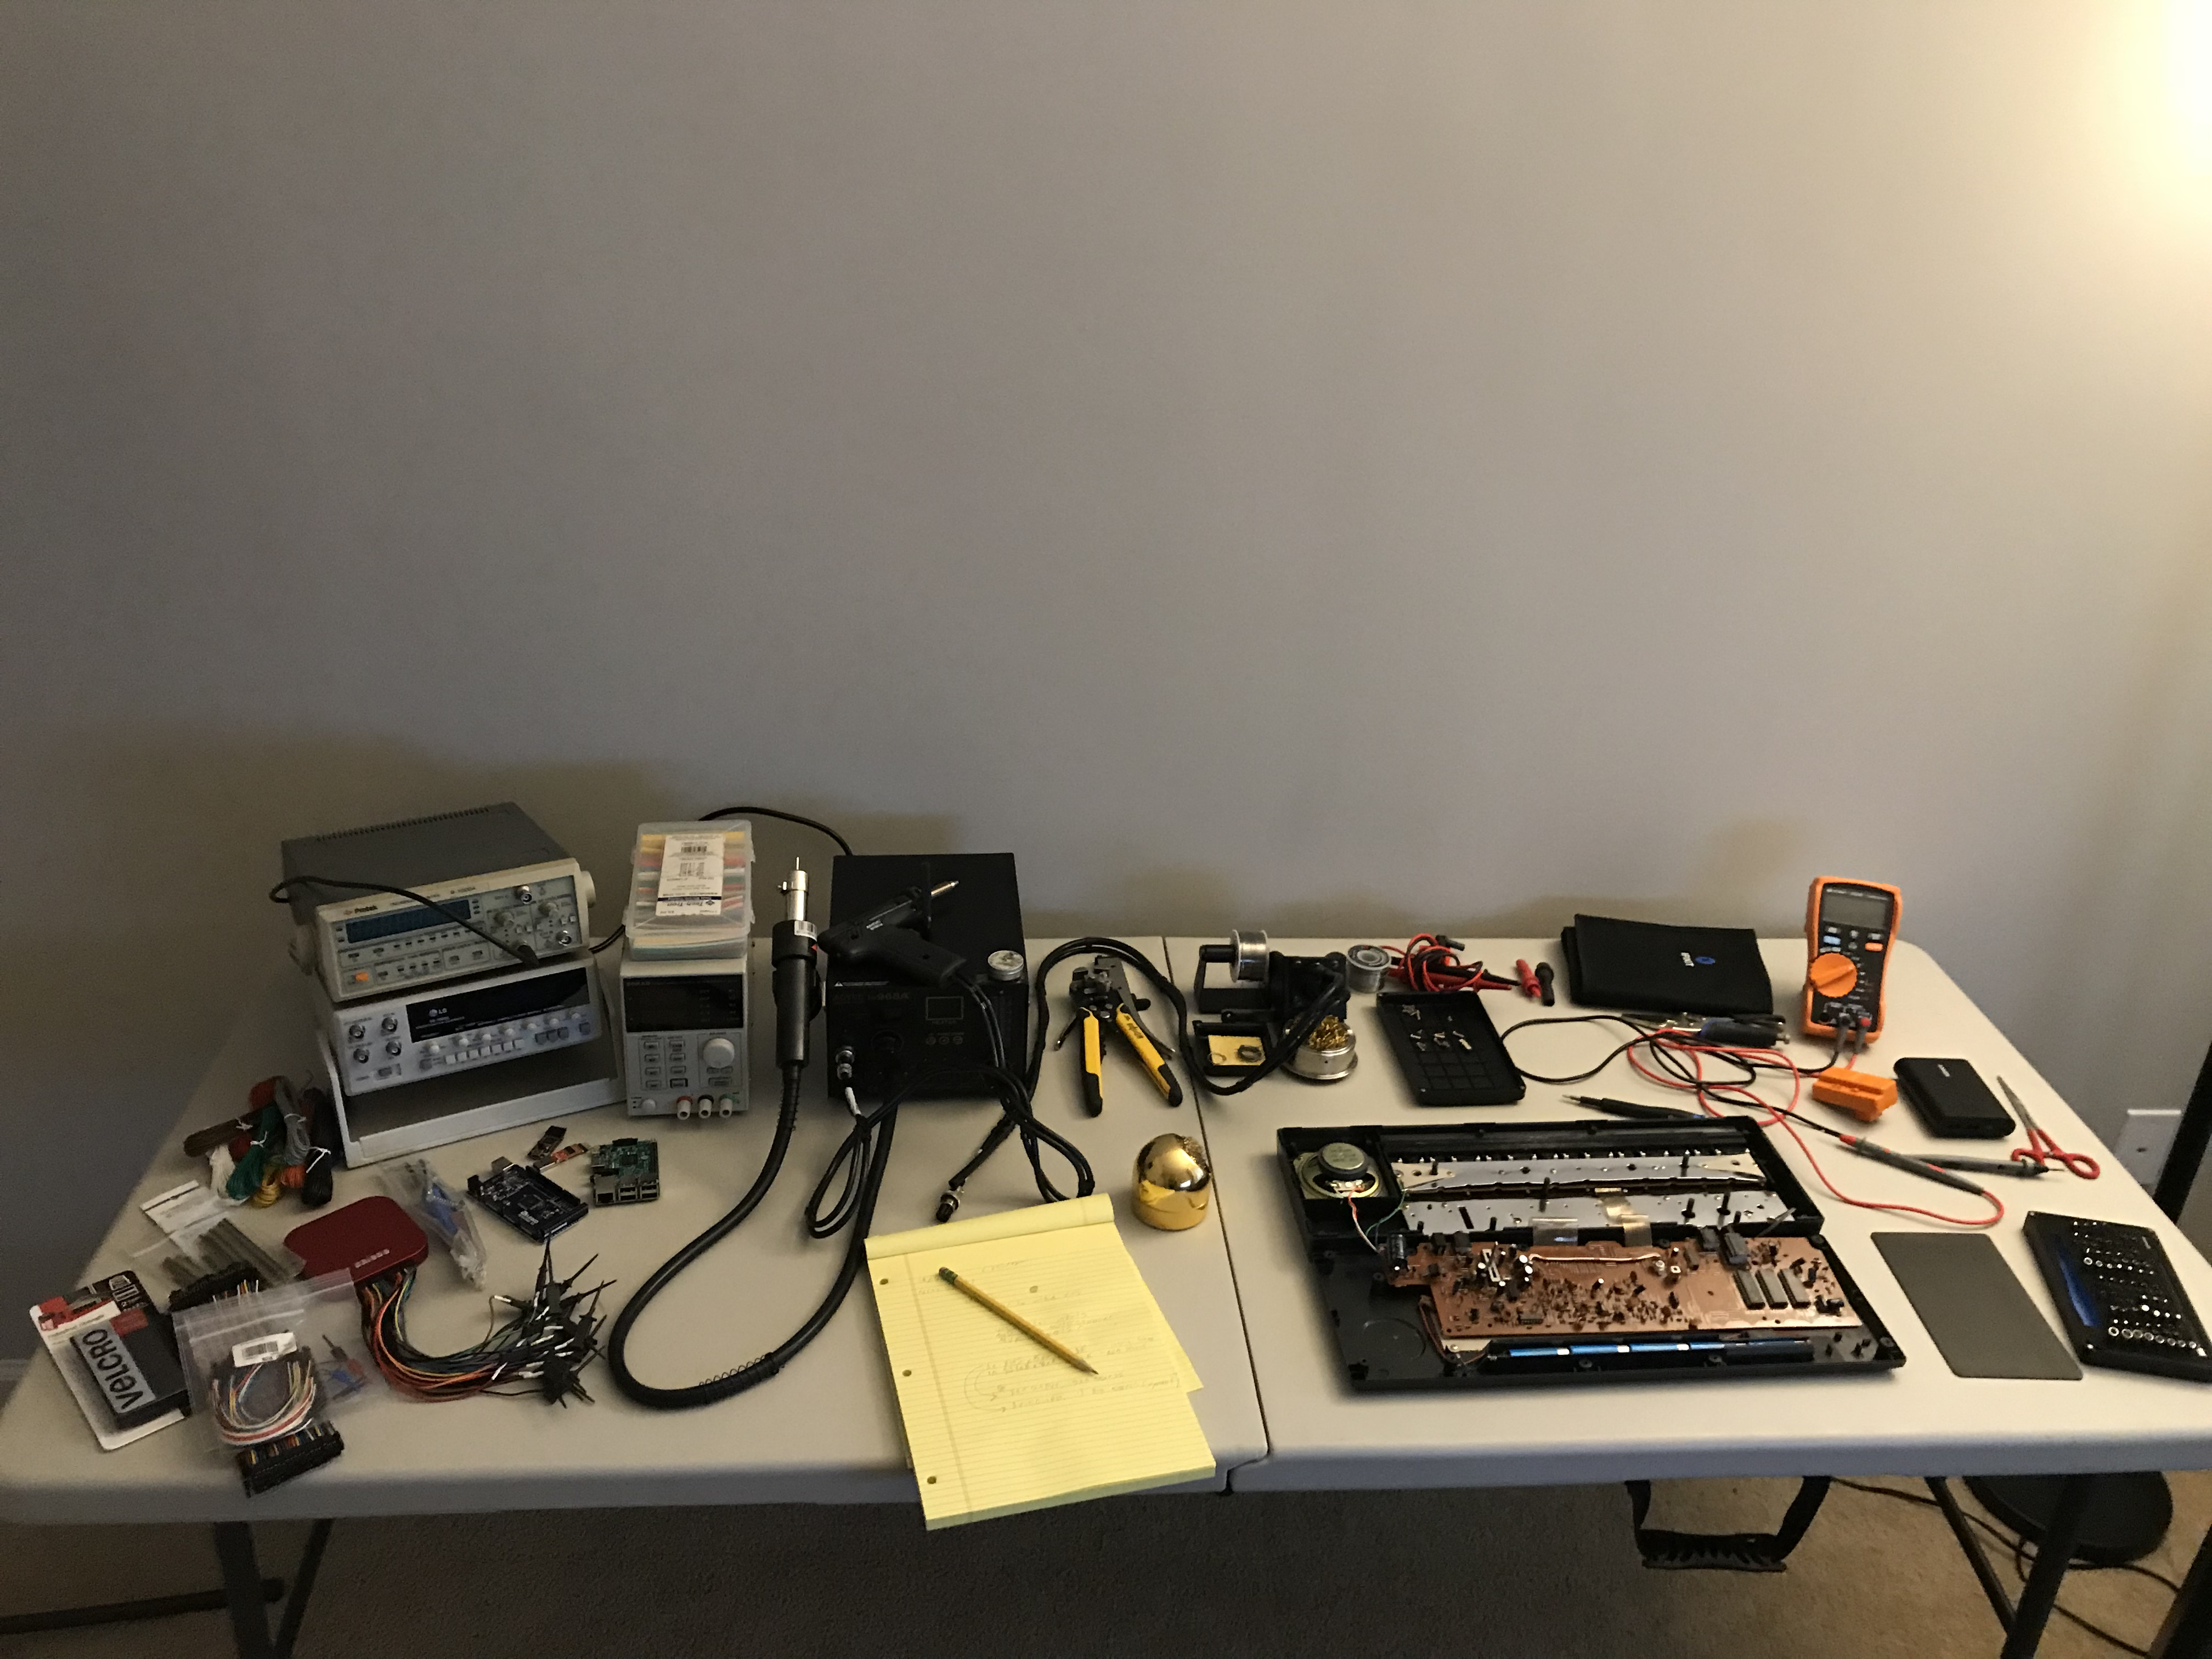 Reverse Engineering The Casio Sk 1 Part Dumping Rom Circuit Bending A Sk1 First Steps Set Up Bench And Break Thing Open